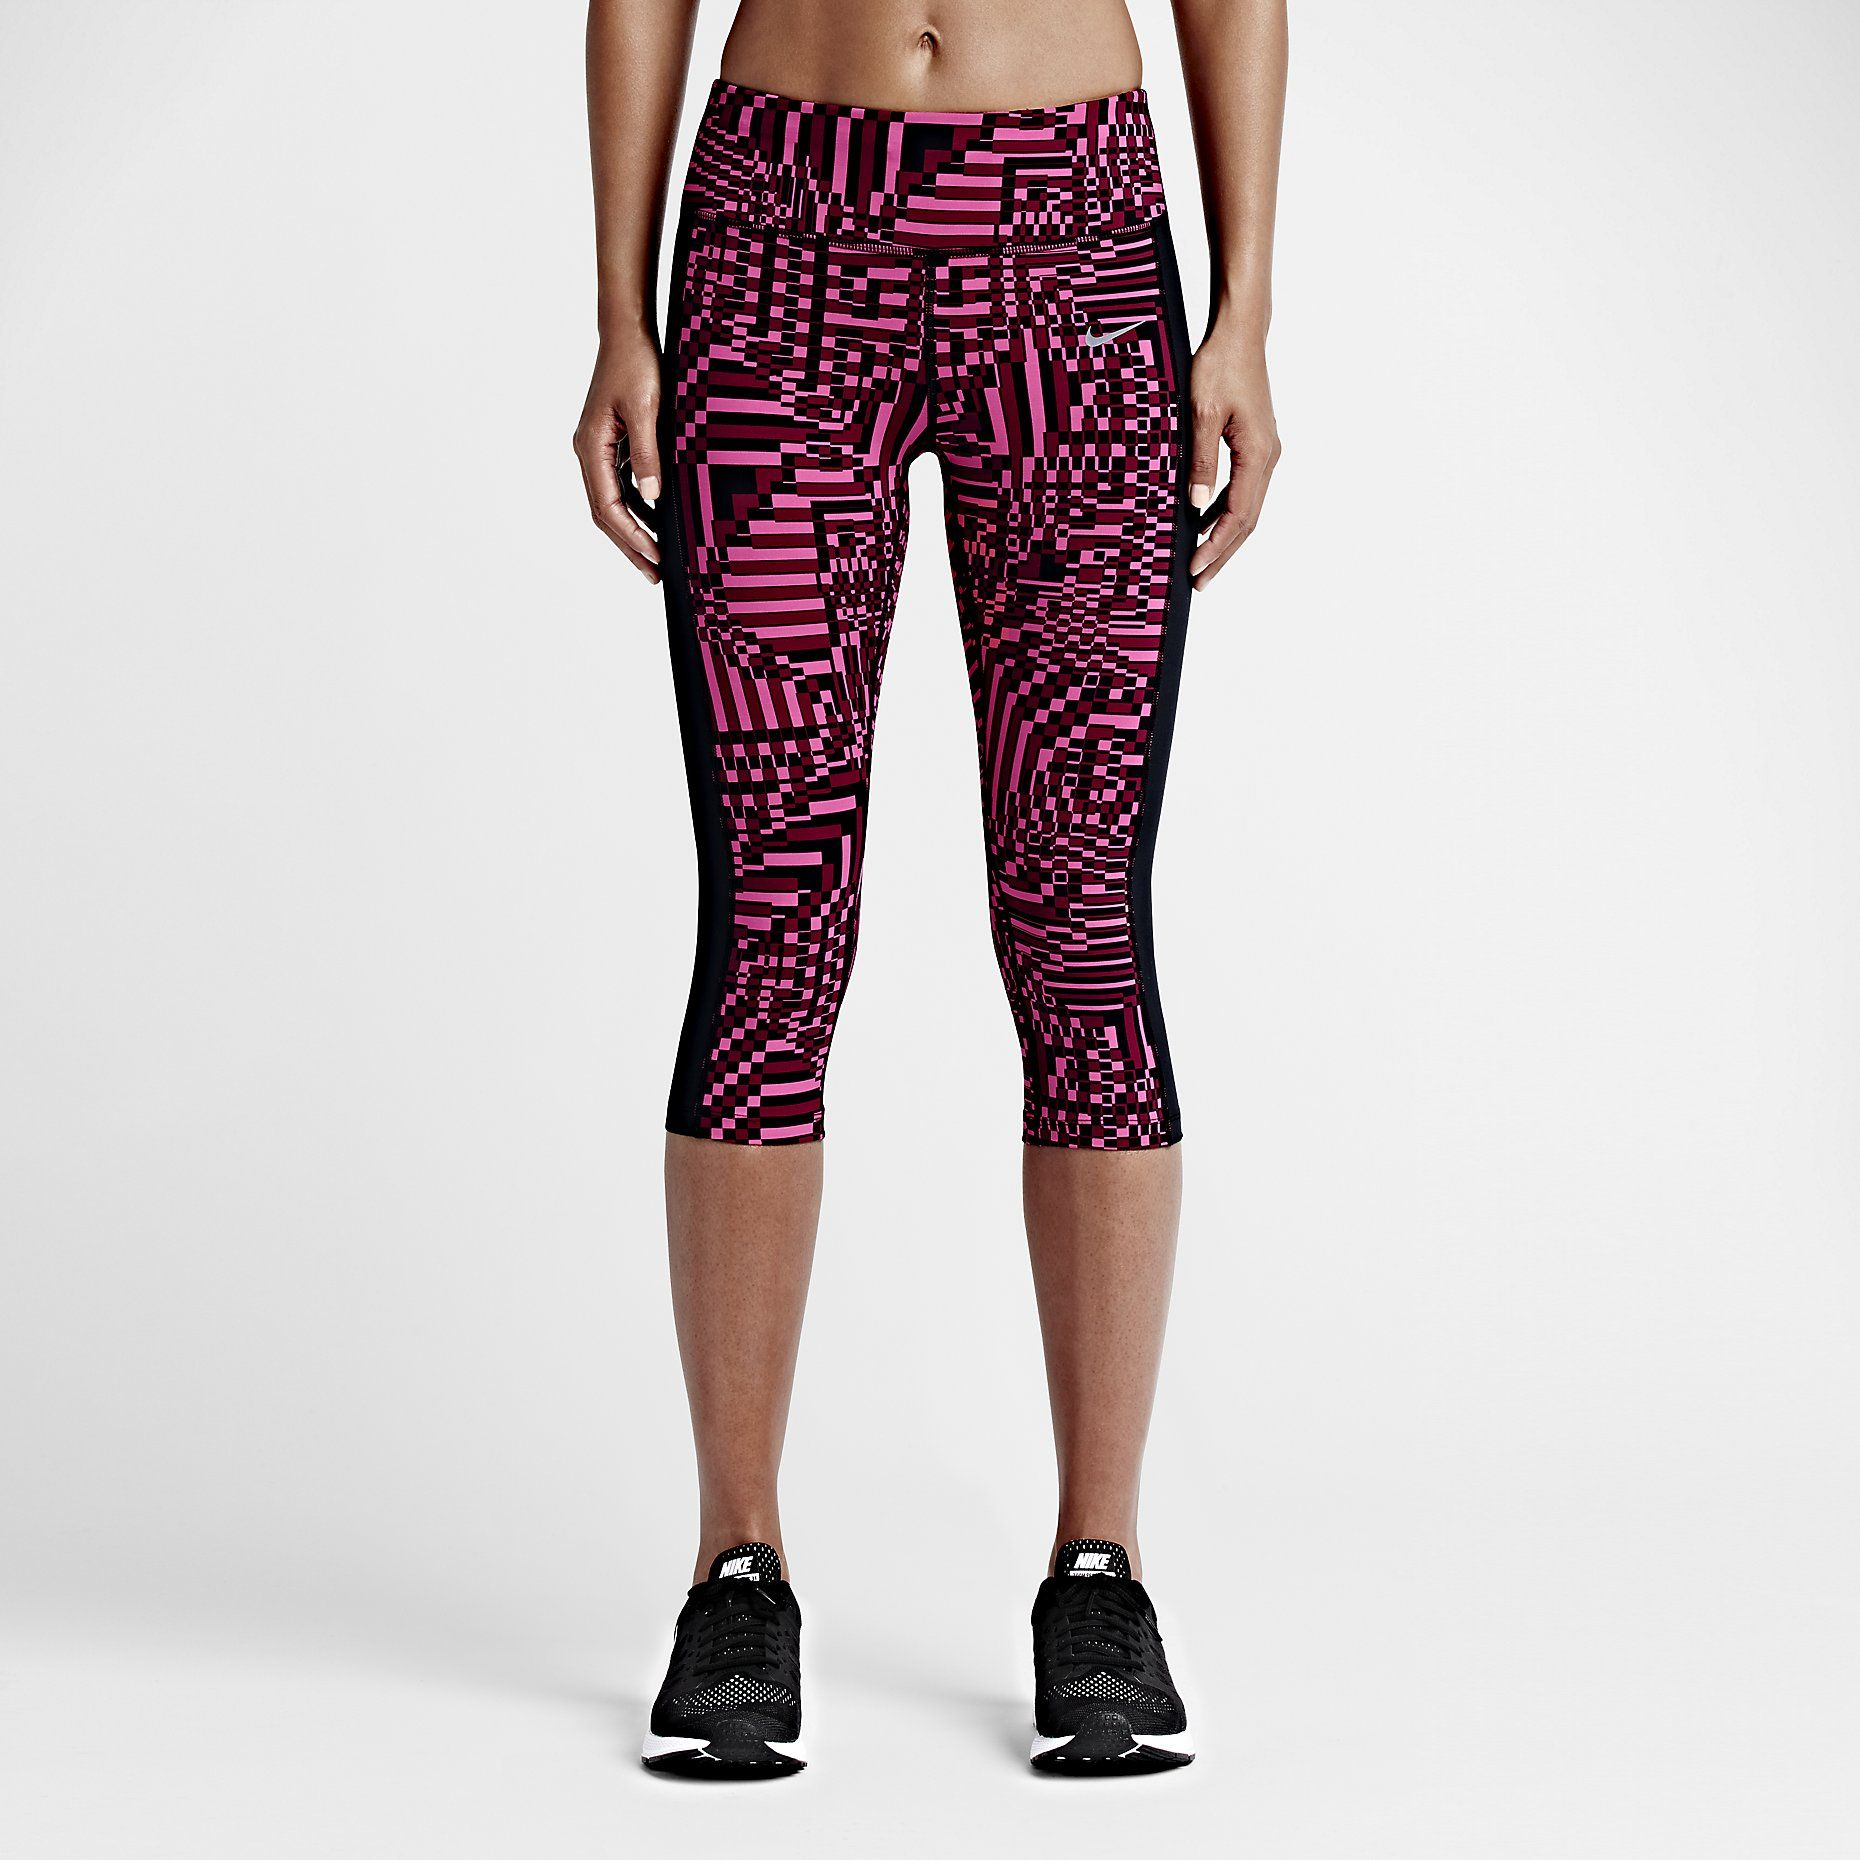 Women Clothing Tights Light Crimson/Black Nike Palm Epic Lux Running Crop Tight